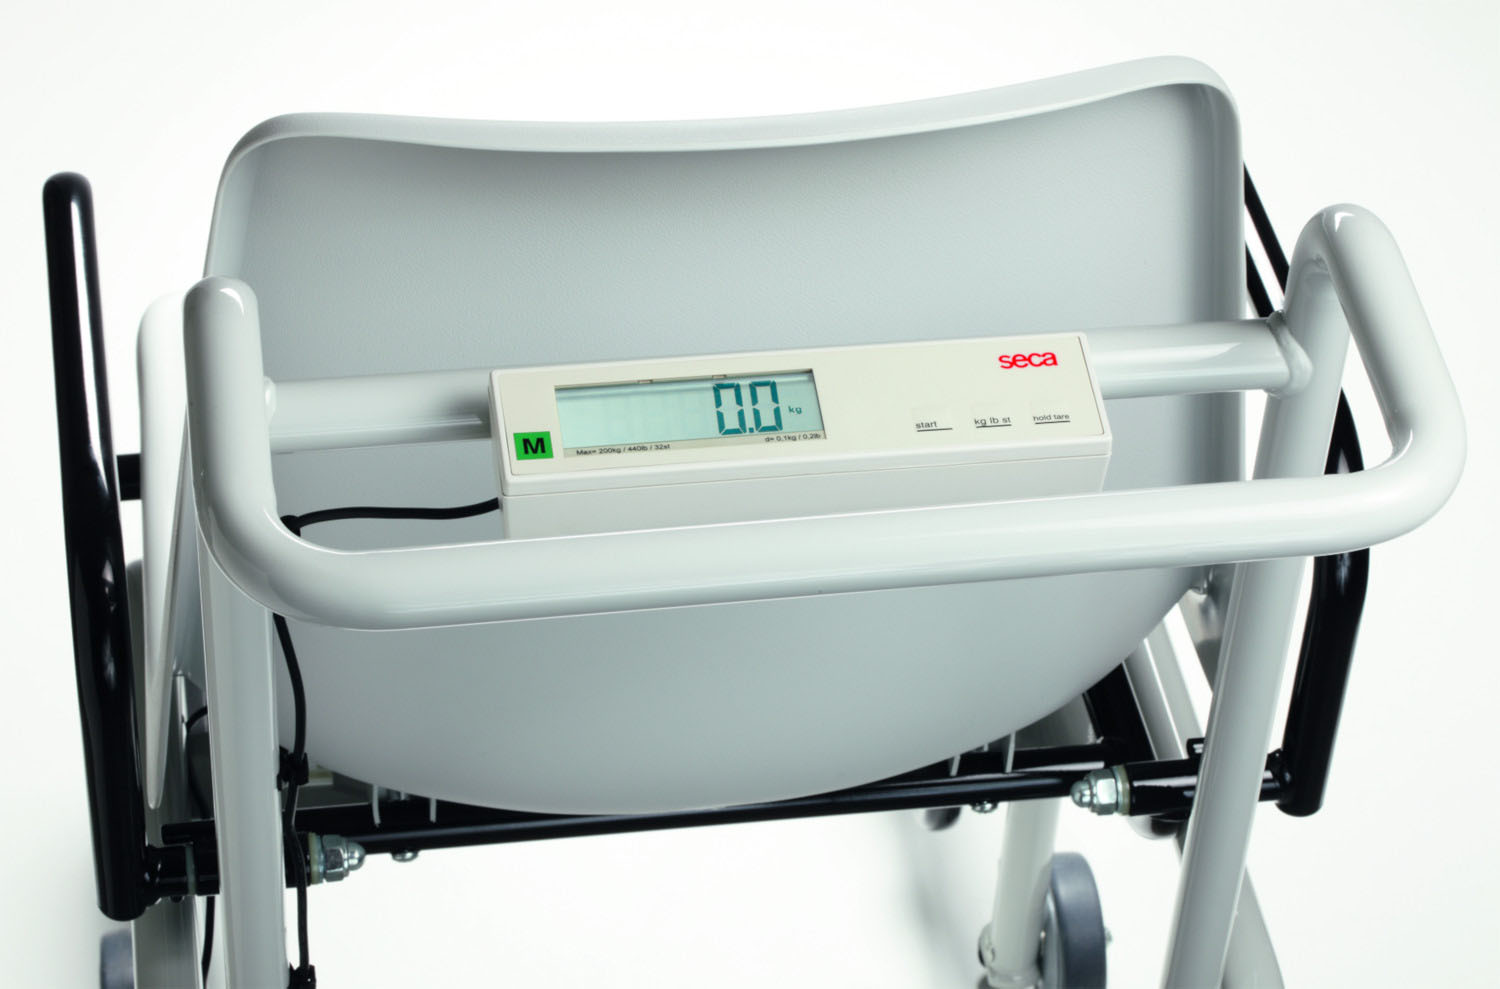 SECA 956 Electronic Chair Scale with Fold Up Armrests